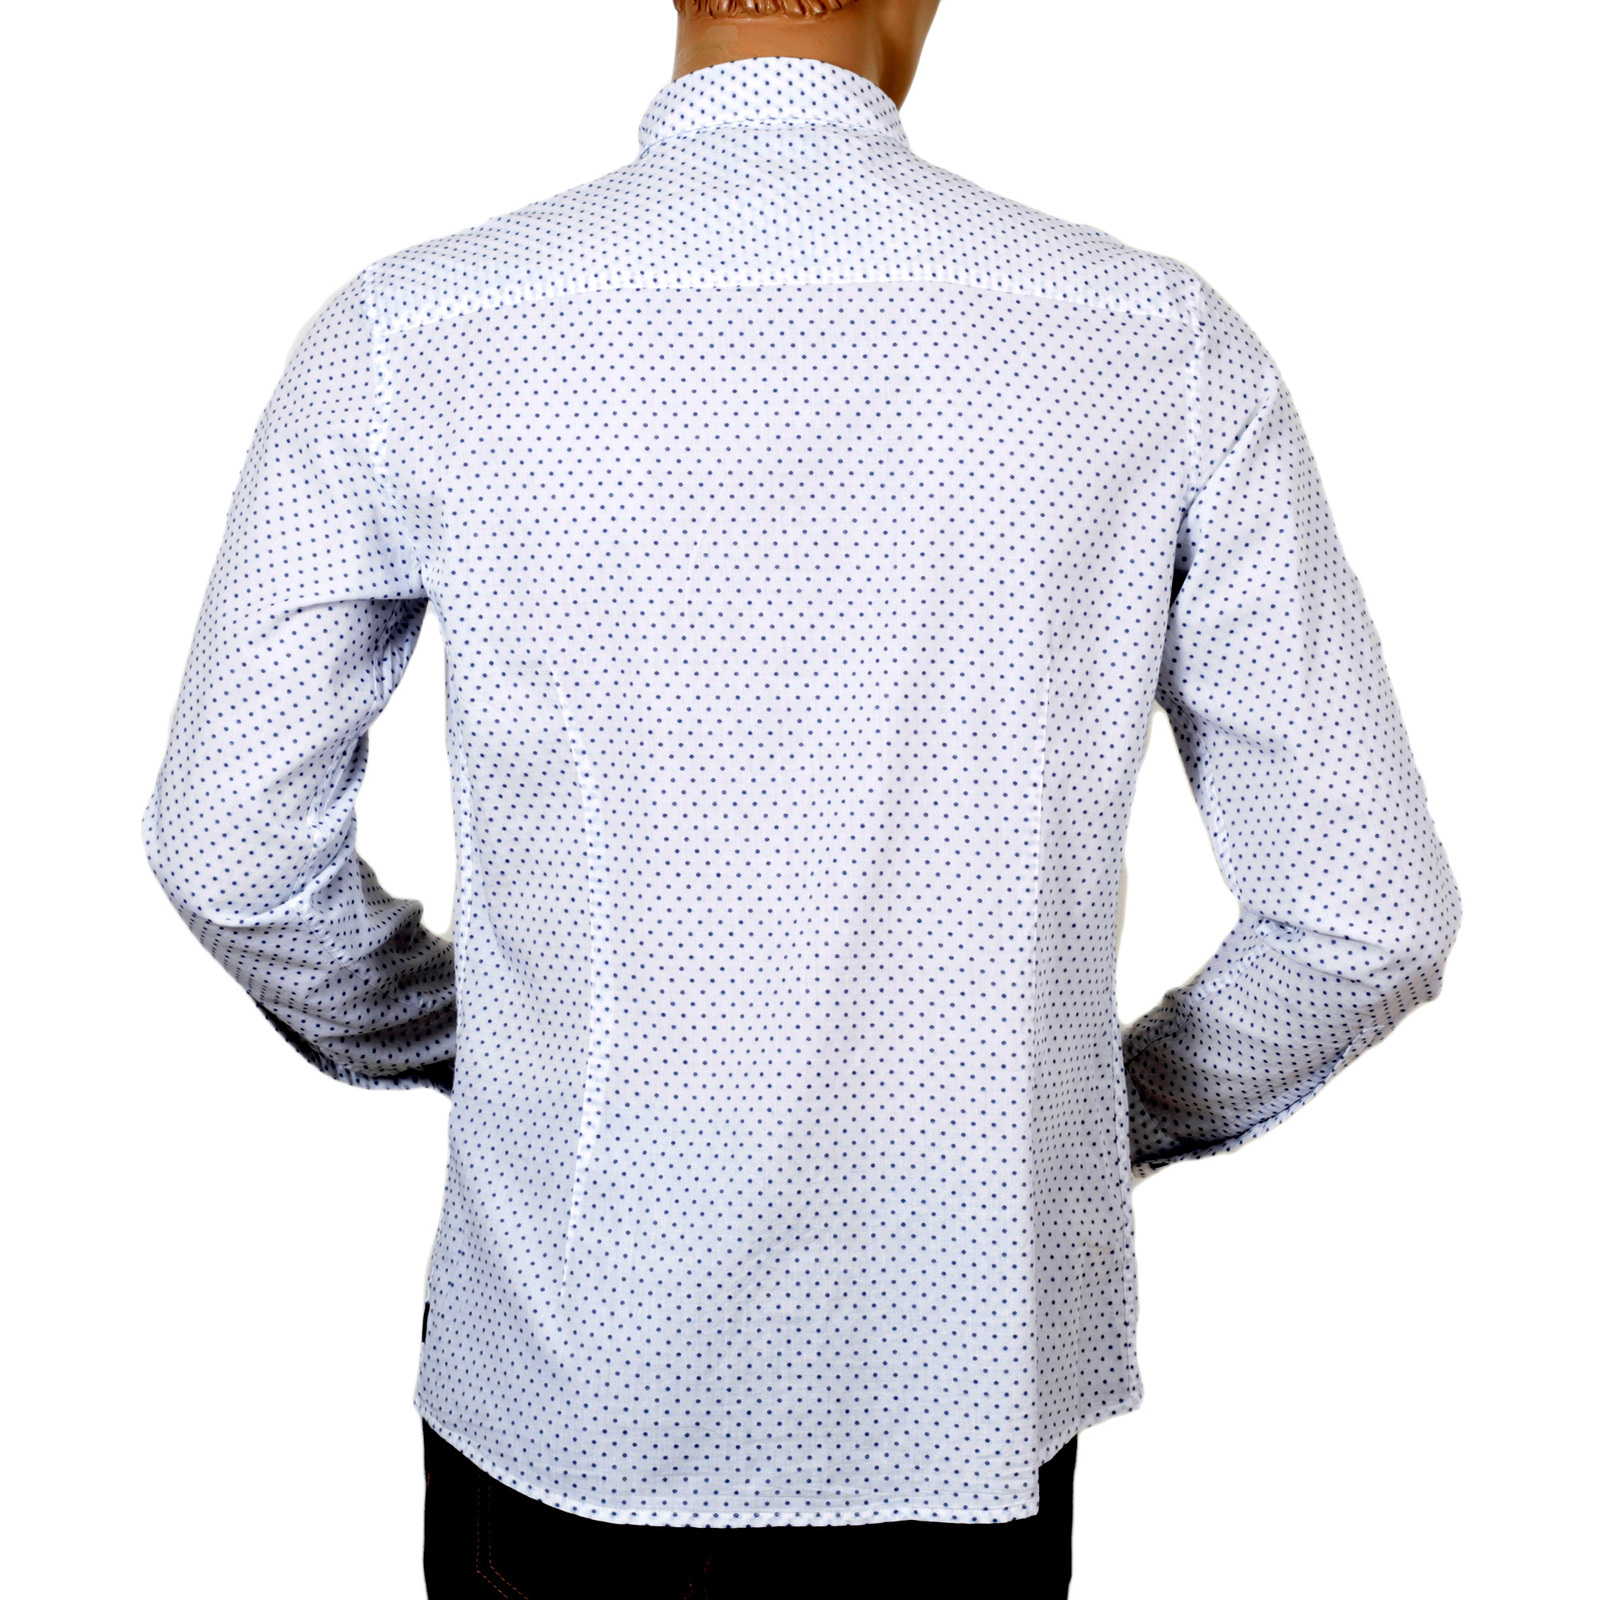 16162f3a5b Armani Jeans White Woven Cotton Extra Slim Fit Casual Long Sleeve Shirt for Men  with Blue